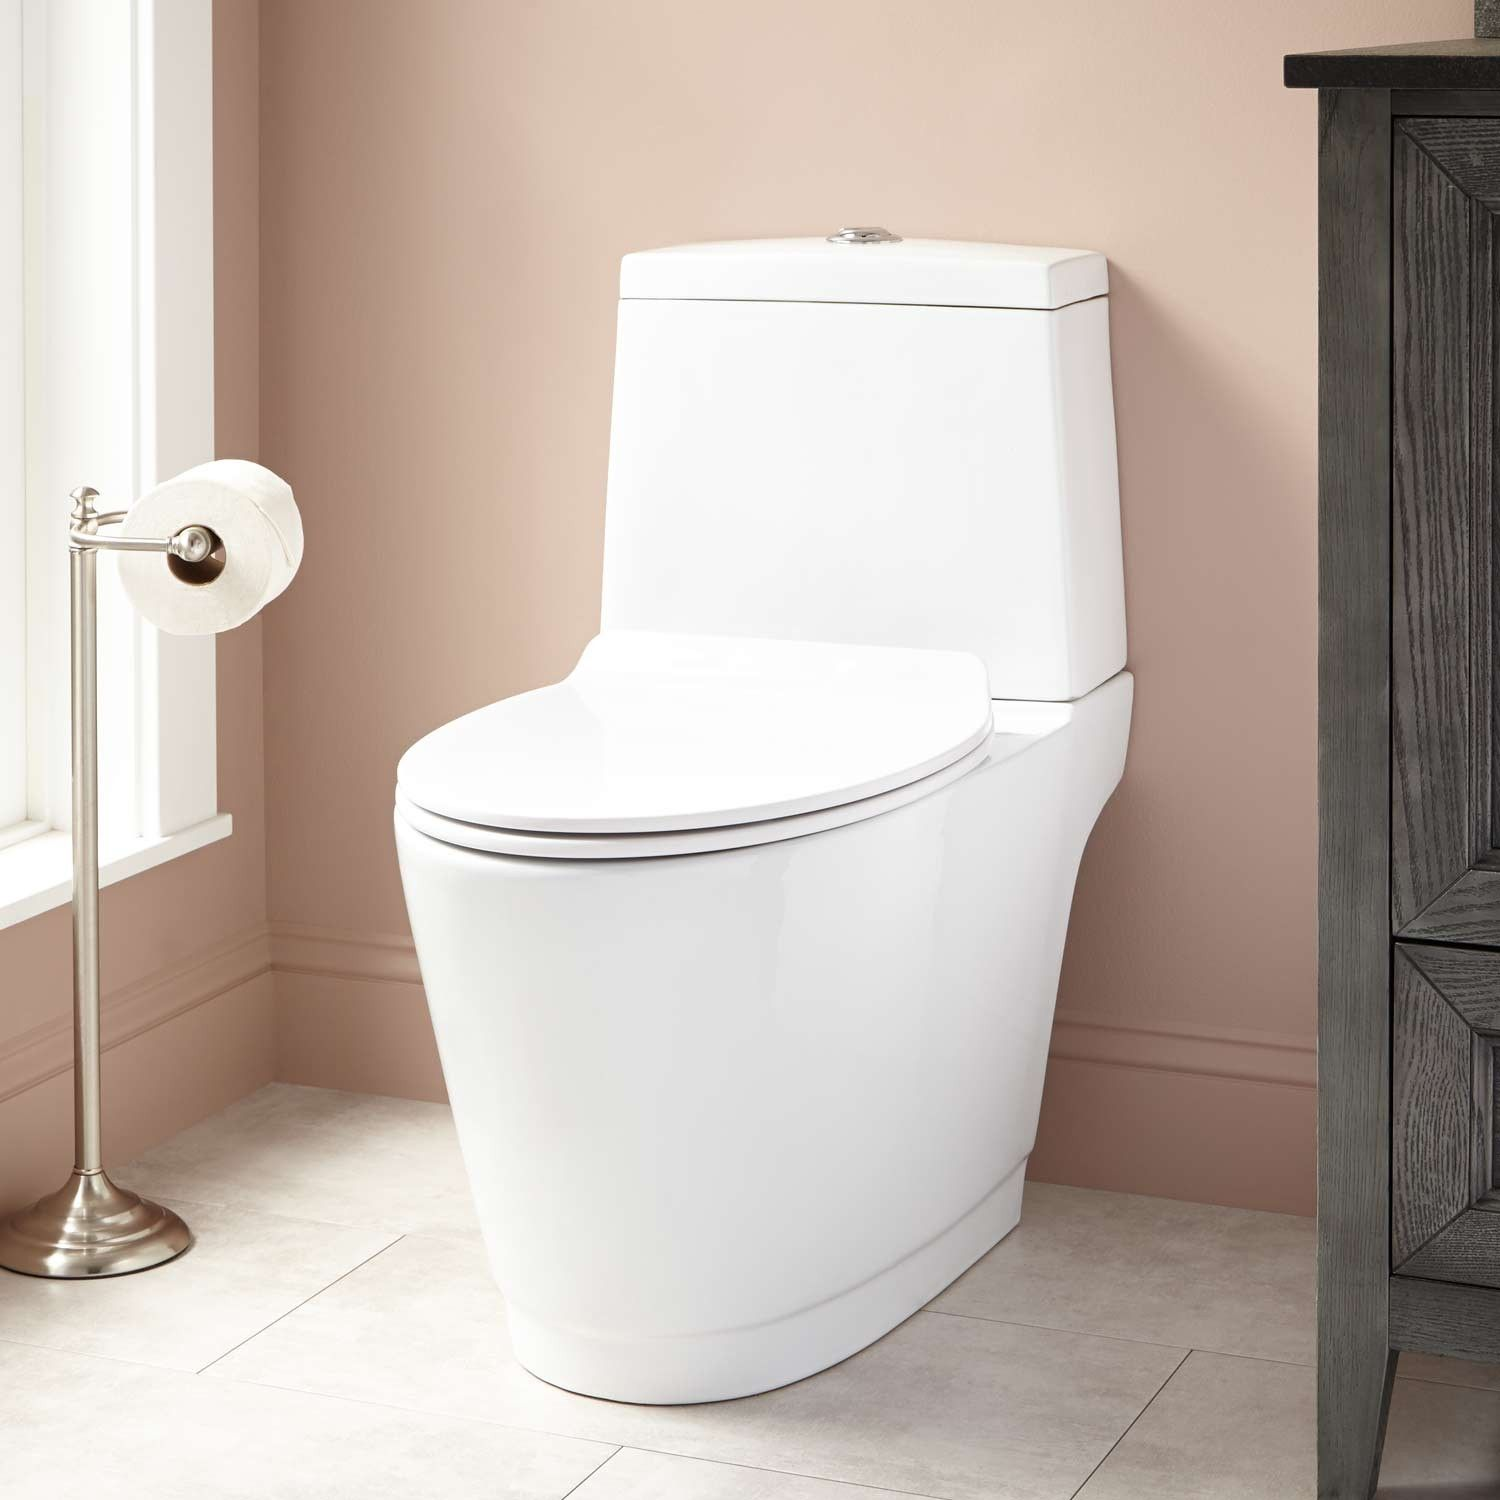 Kenos Dual-Flush Two-Piece Siphonic Toilet - Toilets and Bidets ...